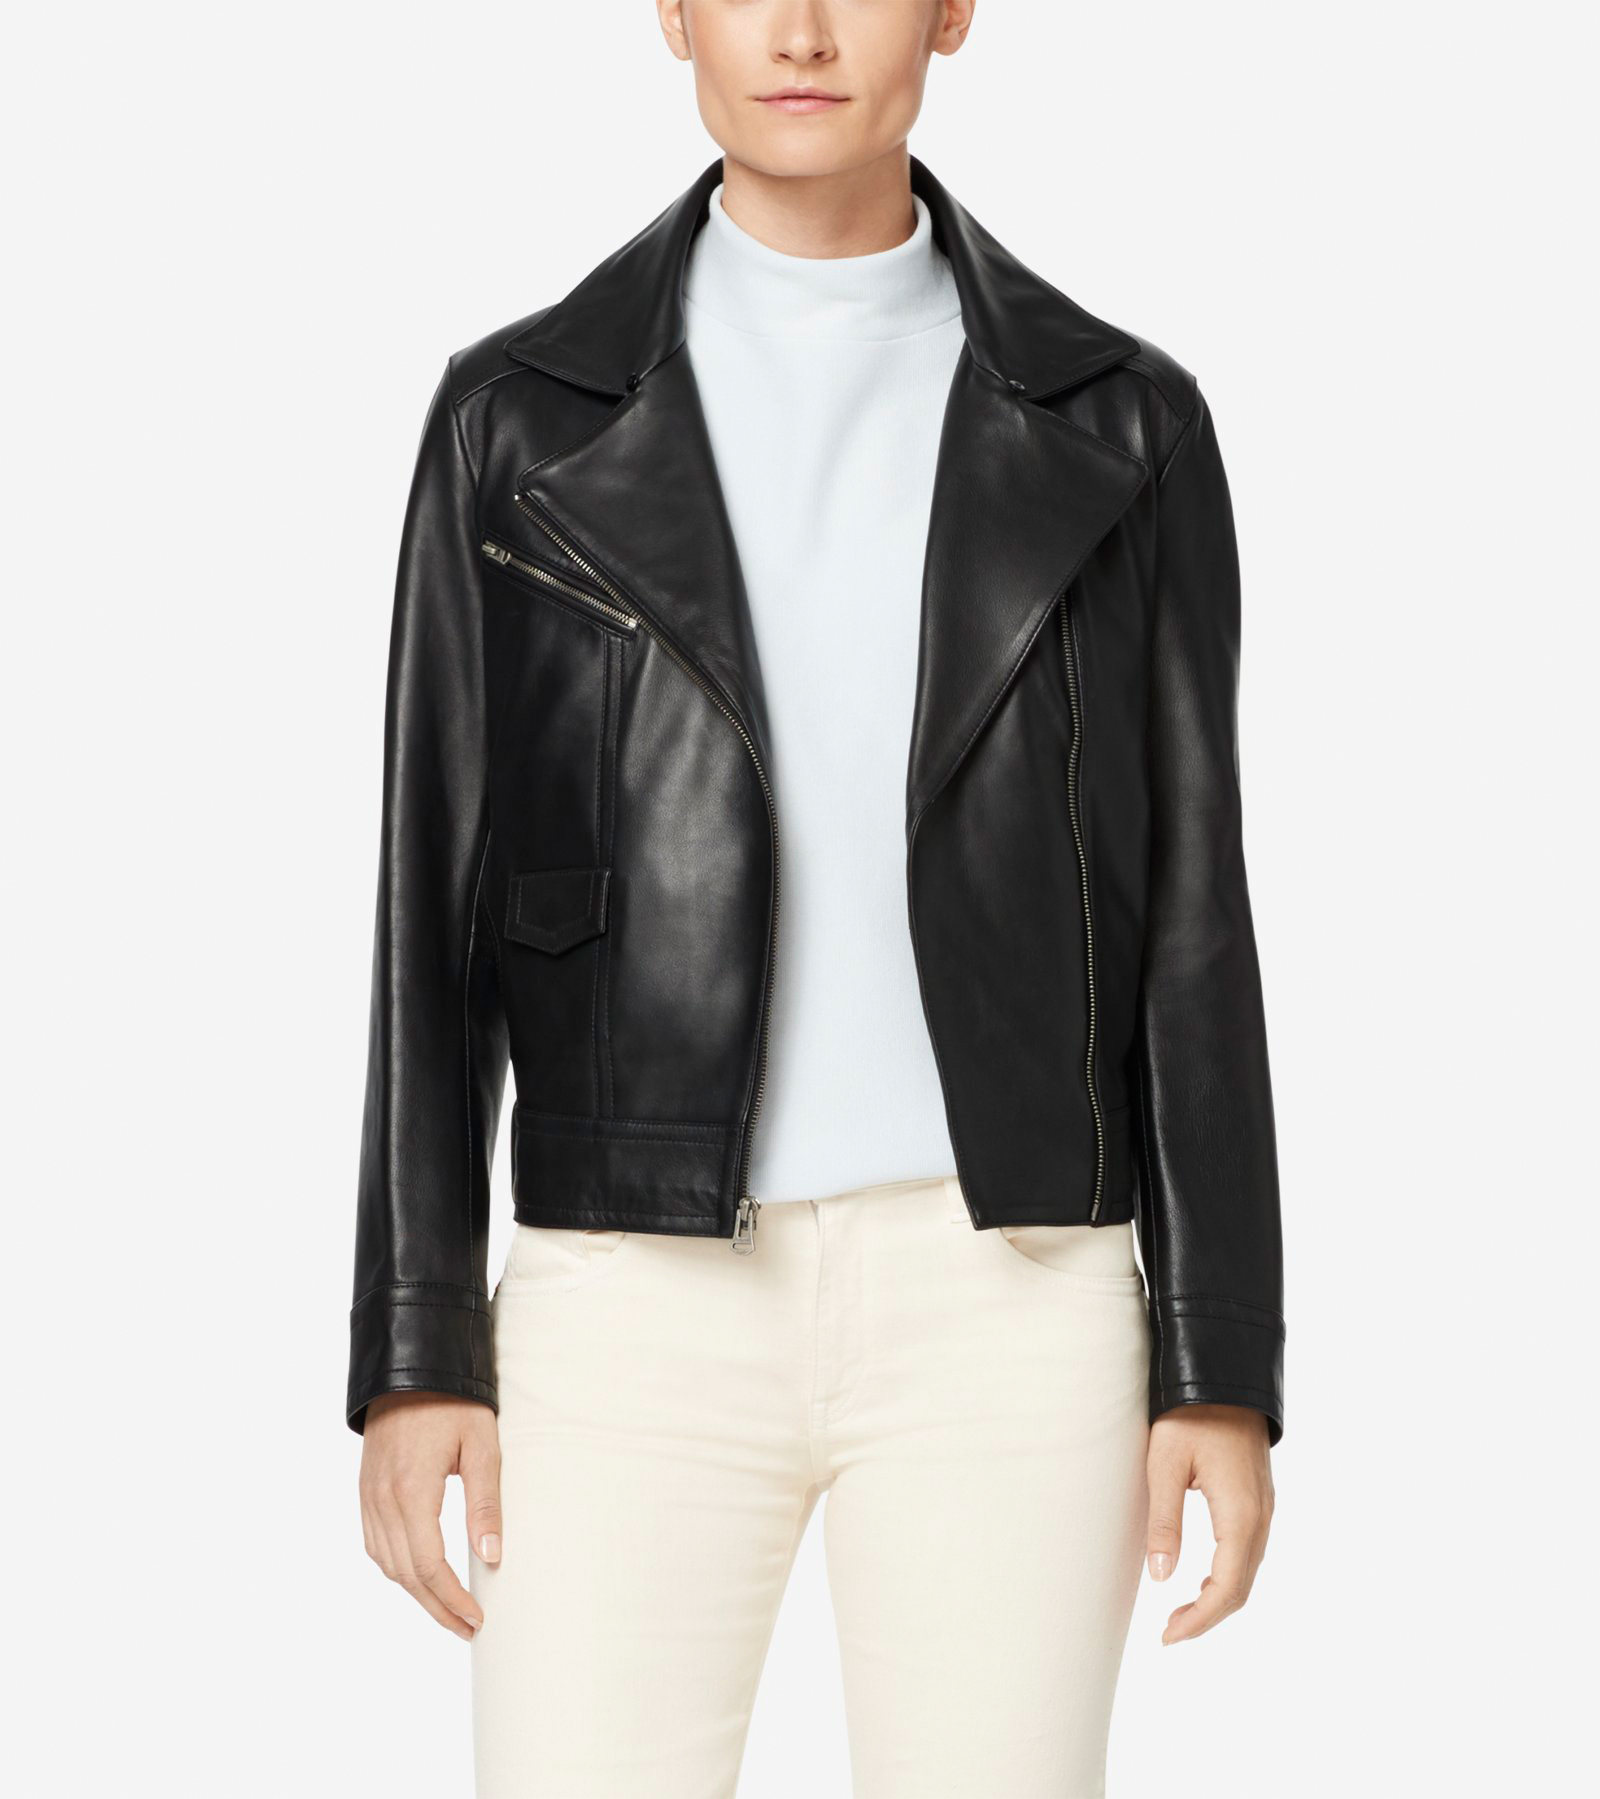 d2828451f60 Women's Leather Moto Jacket with Shearling Collar in Black   Cole Haan